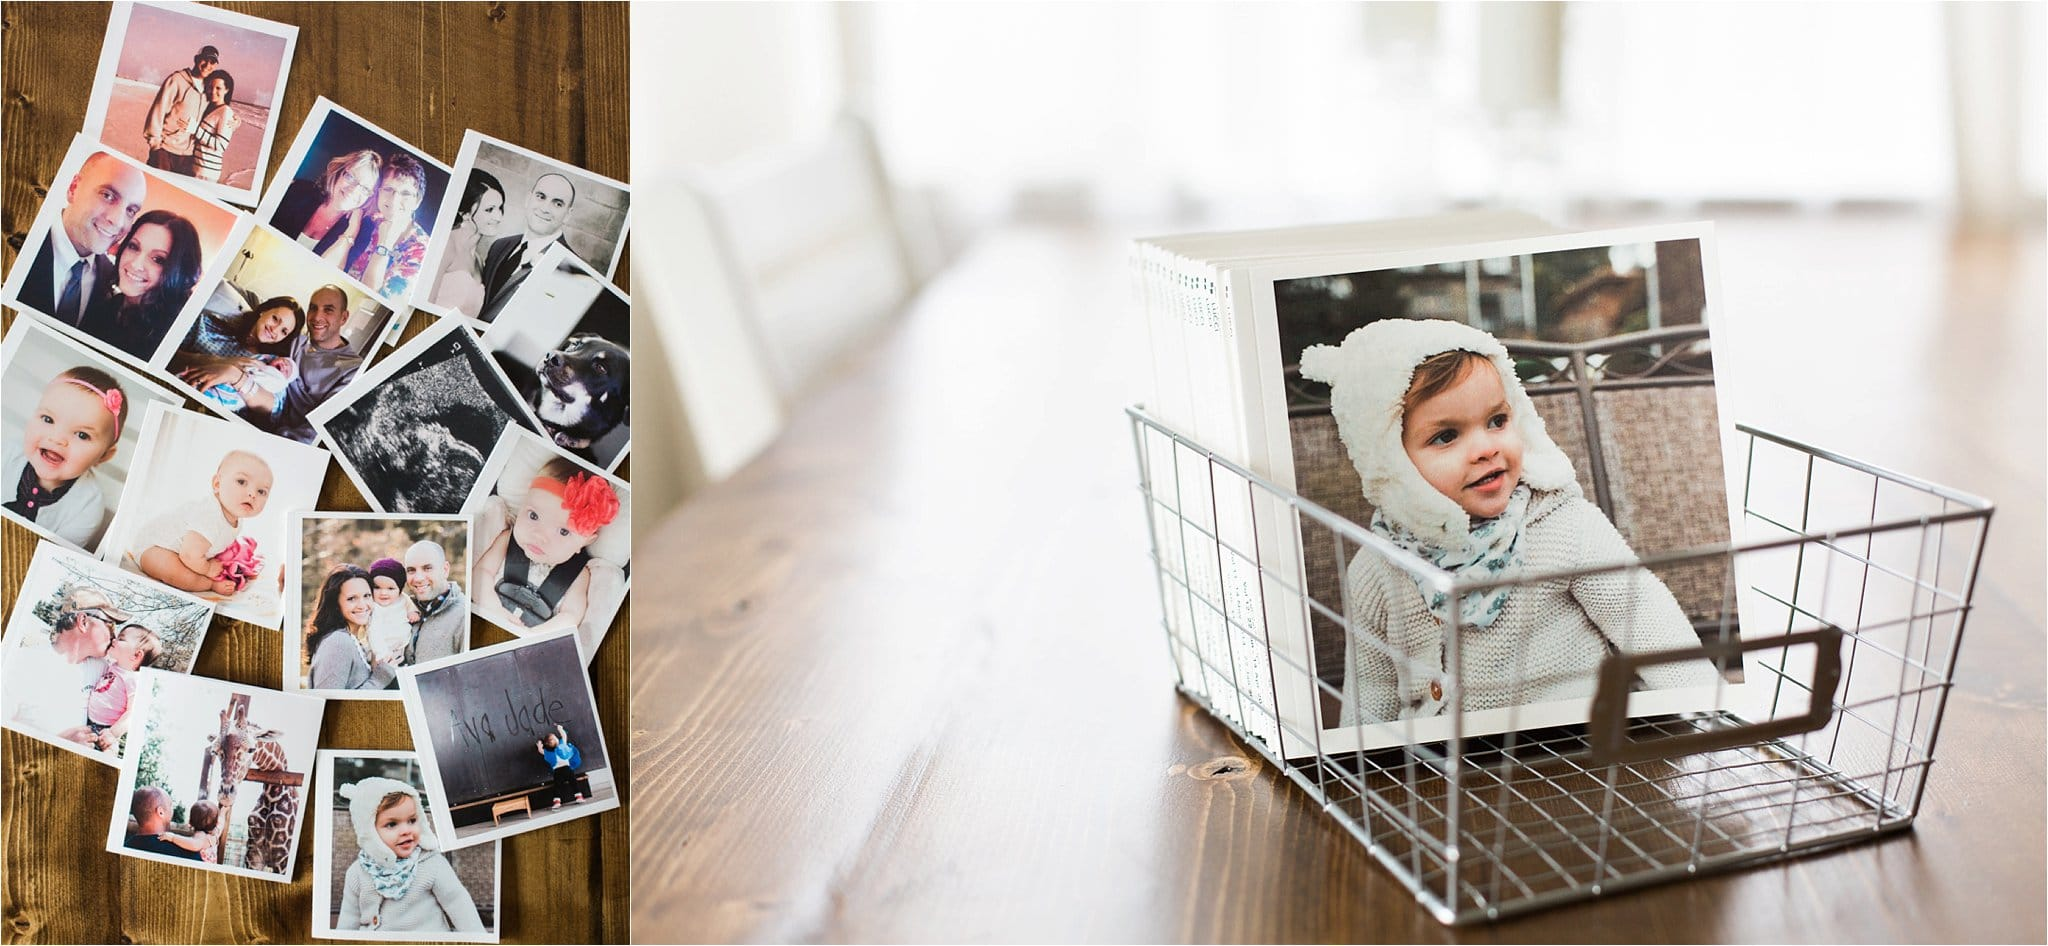 Print Your Family Photos - Chatbooks